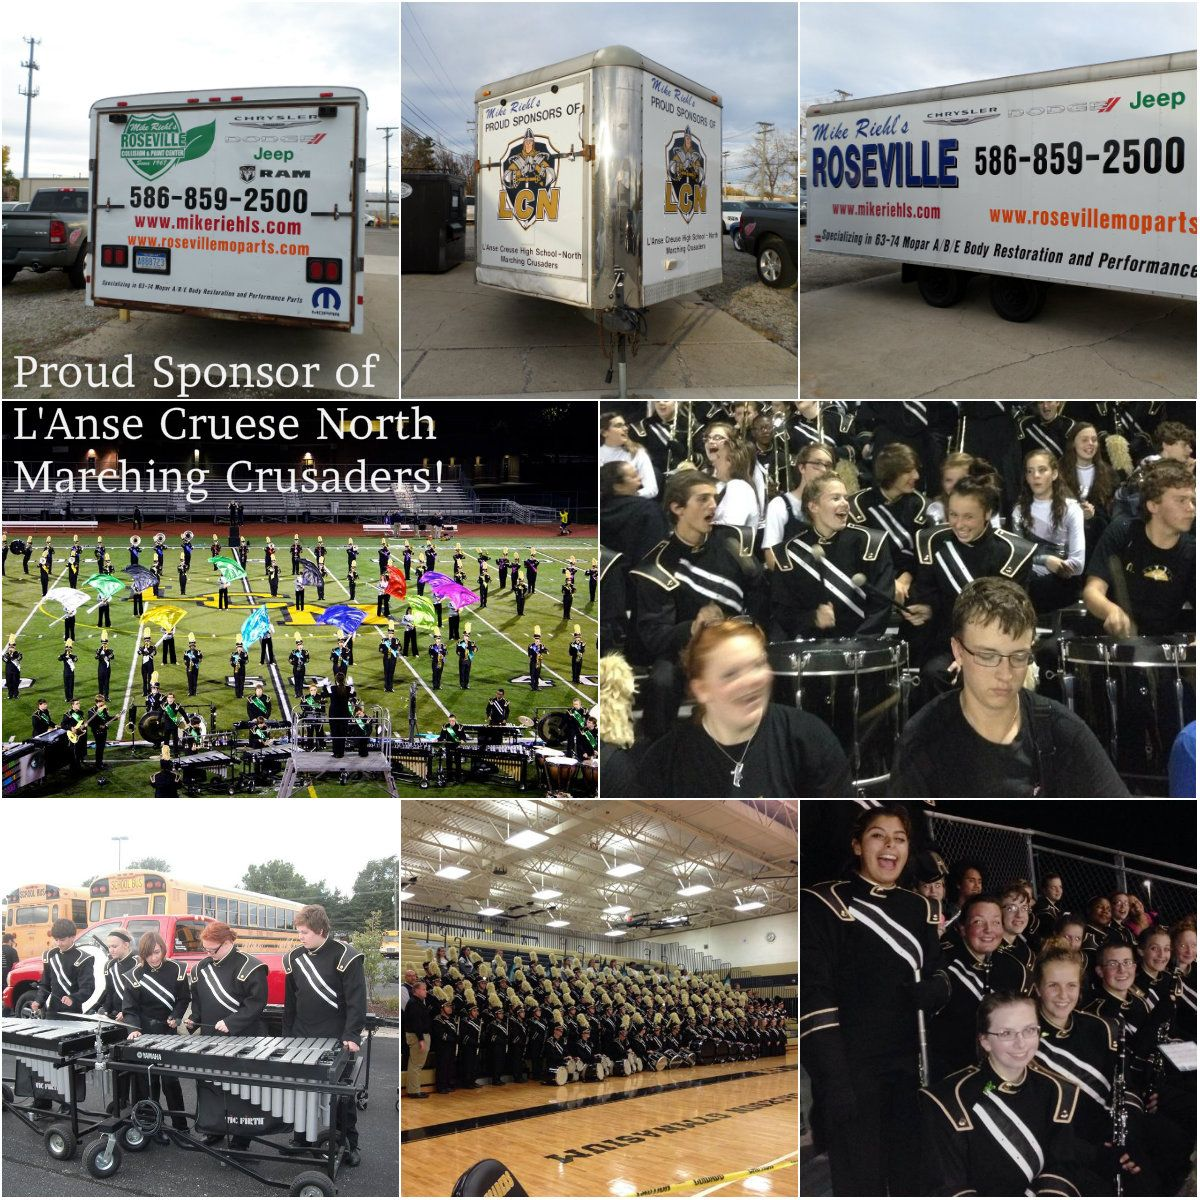 Check out roseville chrysler dodge jeep ram s latest blog post about lending a hand to the l anse cruse north marching crusaders